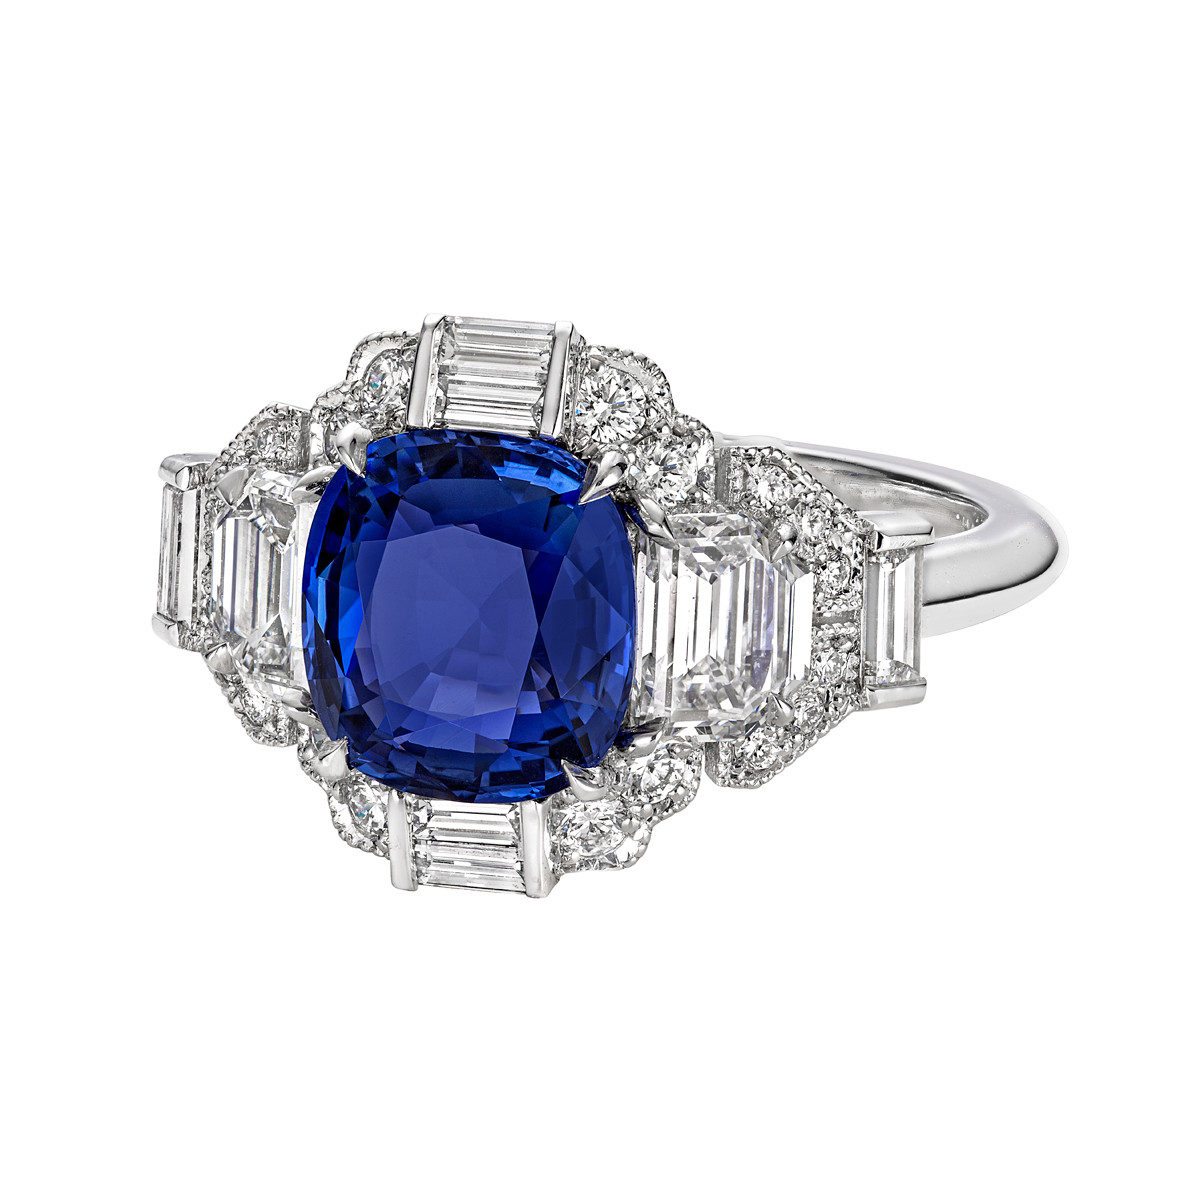 2.44ct No-Heat Sapphire & Diamond Ring